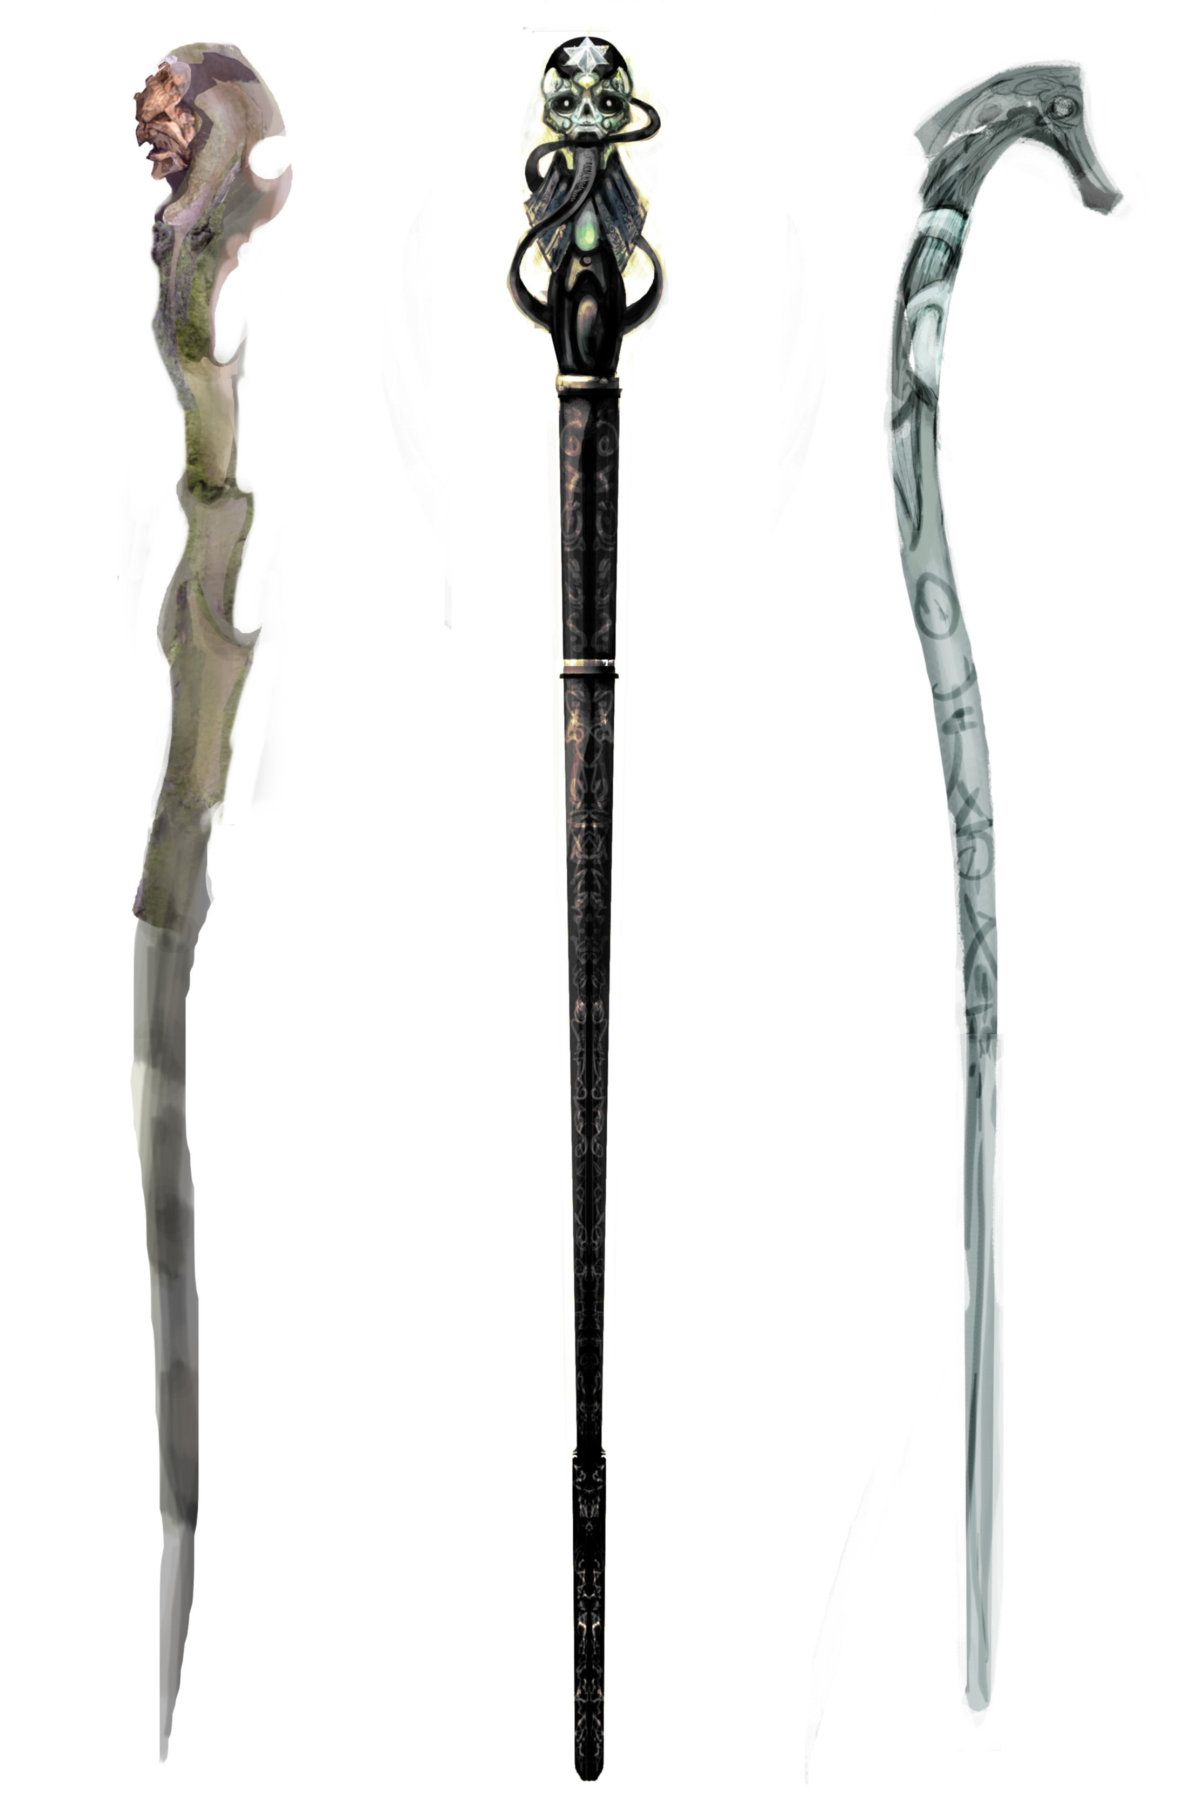 An illustration of three death eaters 39 wands bruno pinterest wand death and third - Coole wanddesigns ...